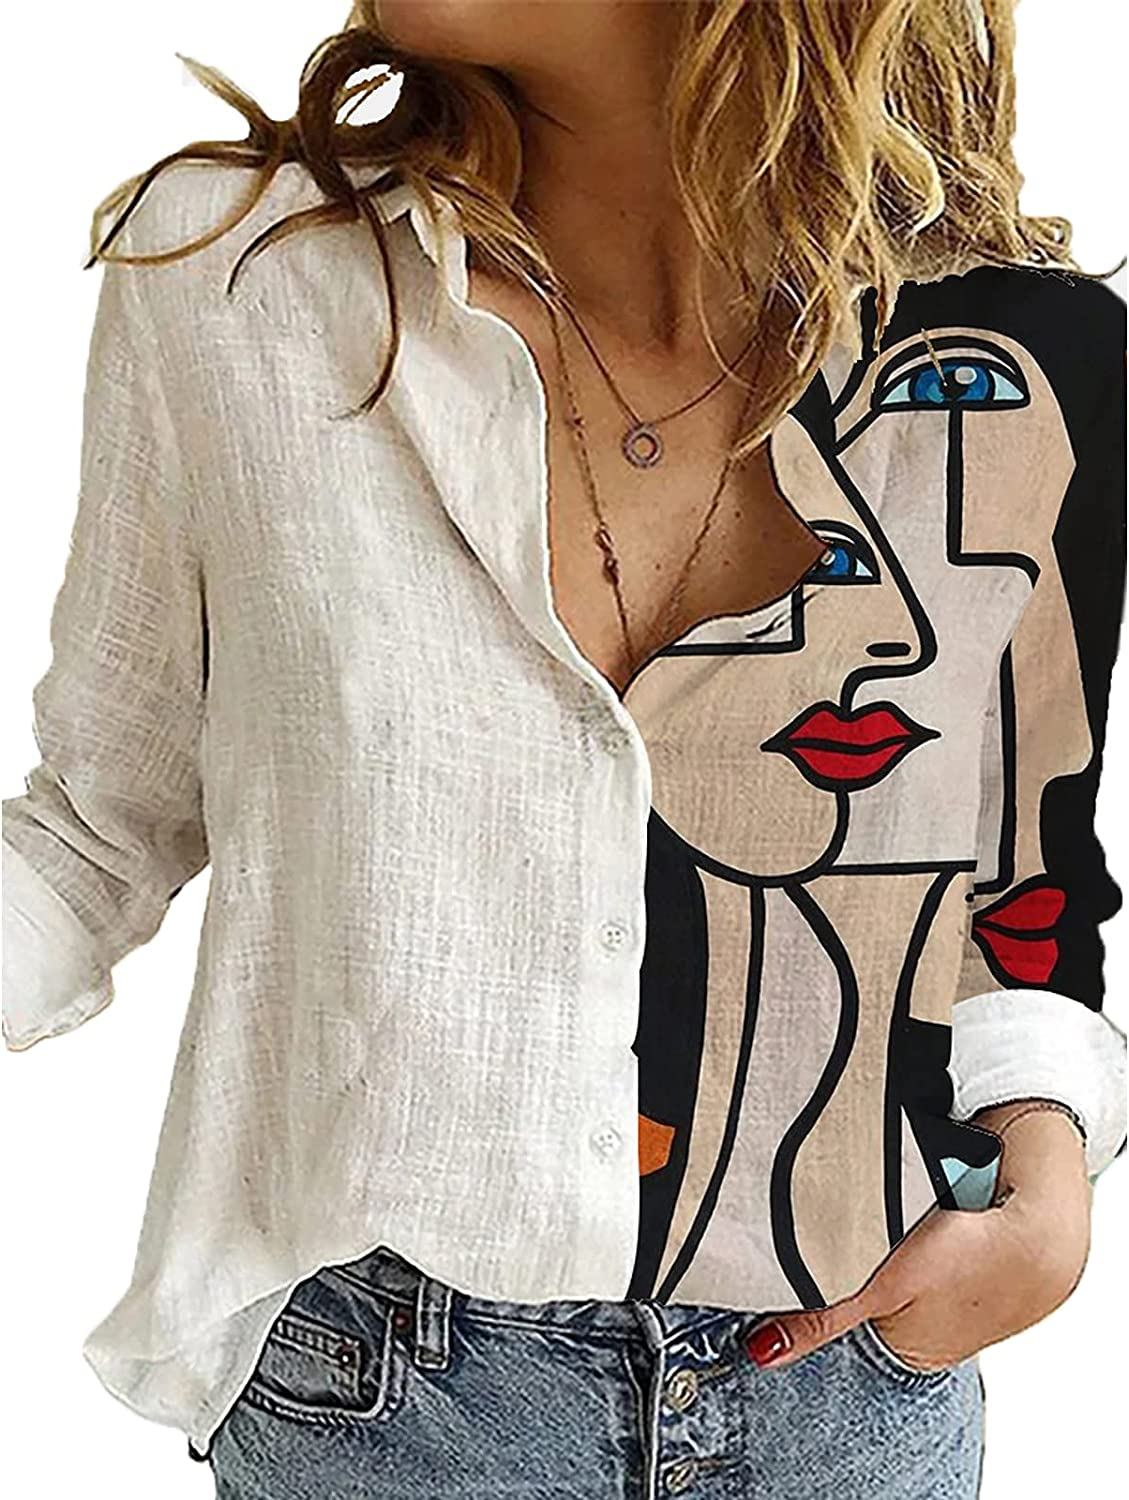 White Womens Cotton Linen Button Down Shirt Long Sleeve V Neck Fashion Blouse Printed Casual Tops for Work